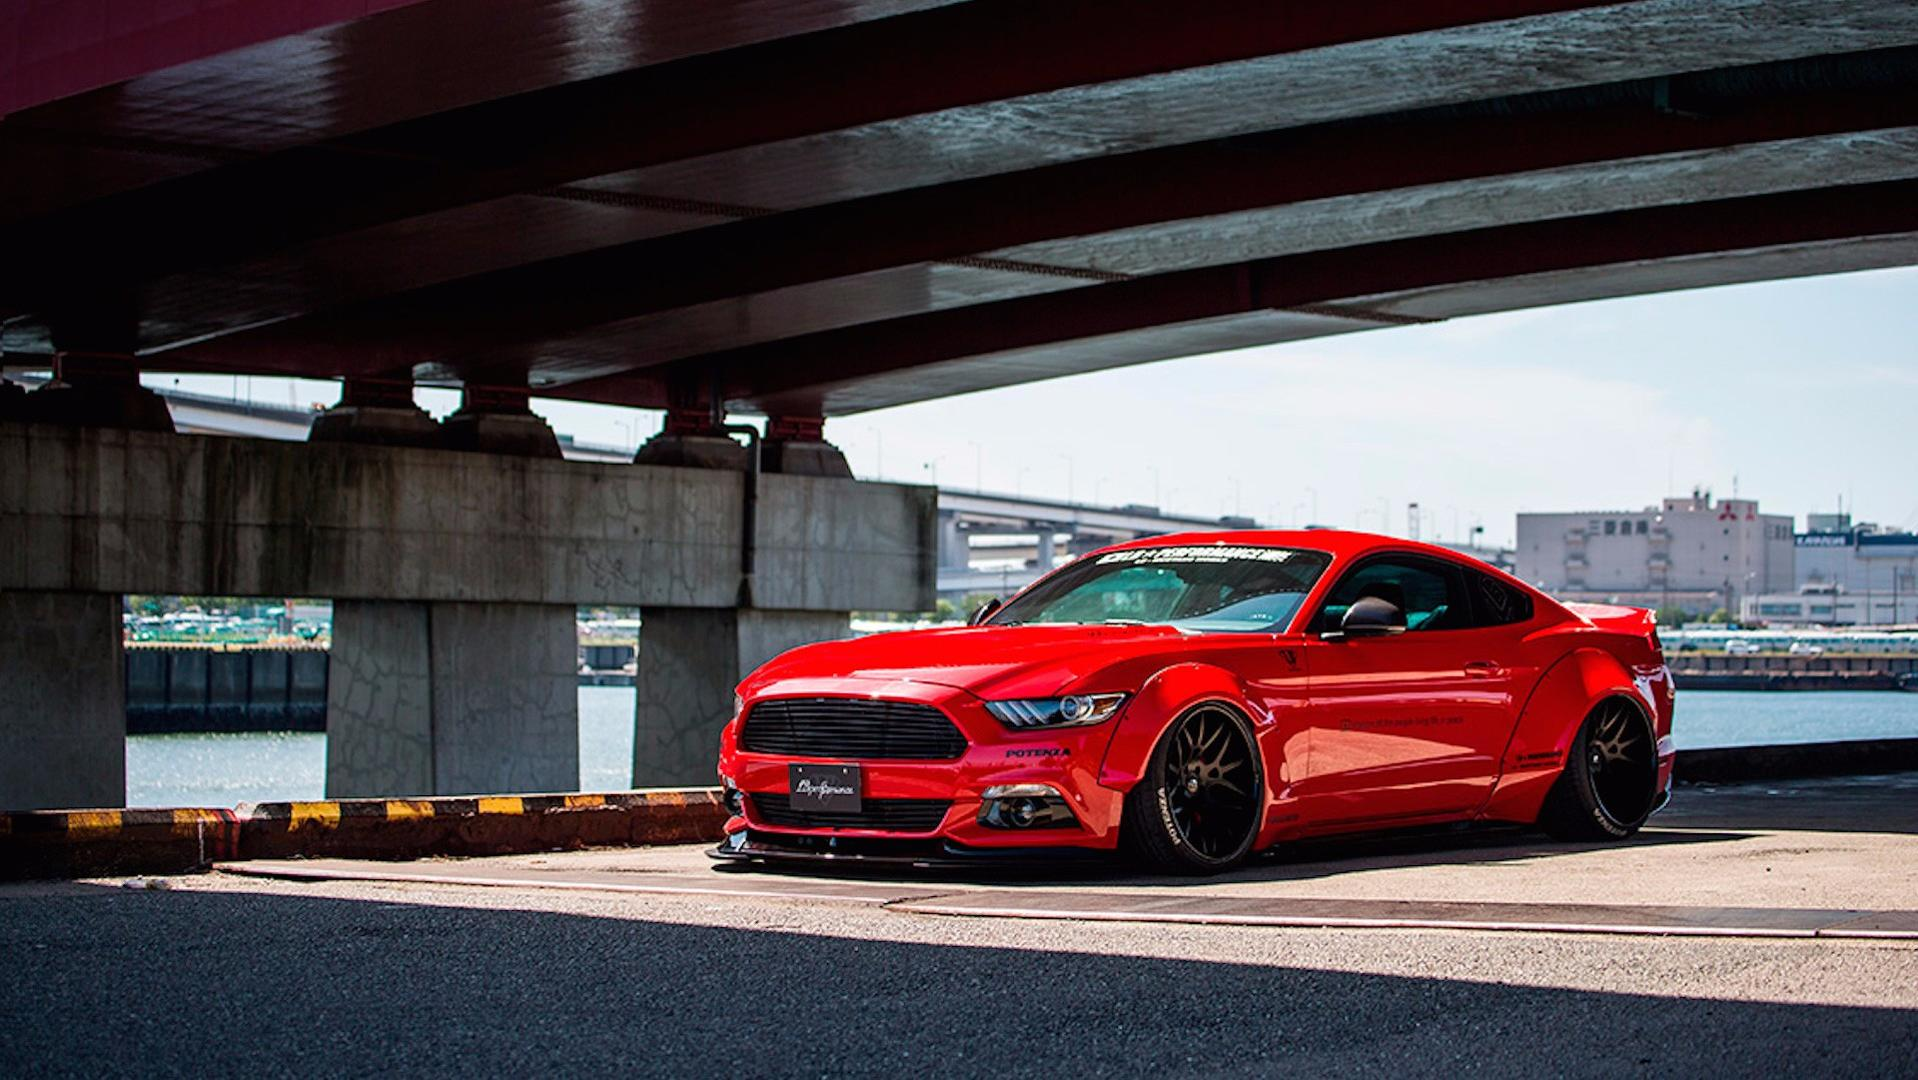 2017 Mustang Shelby Gt350 Black >> Ford Mustang gets Liberty Walk extra low and wide treatment - ForceGT.com